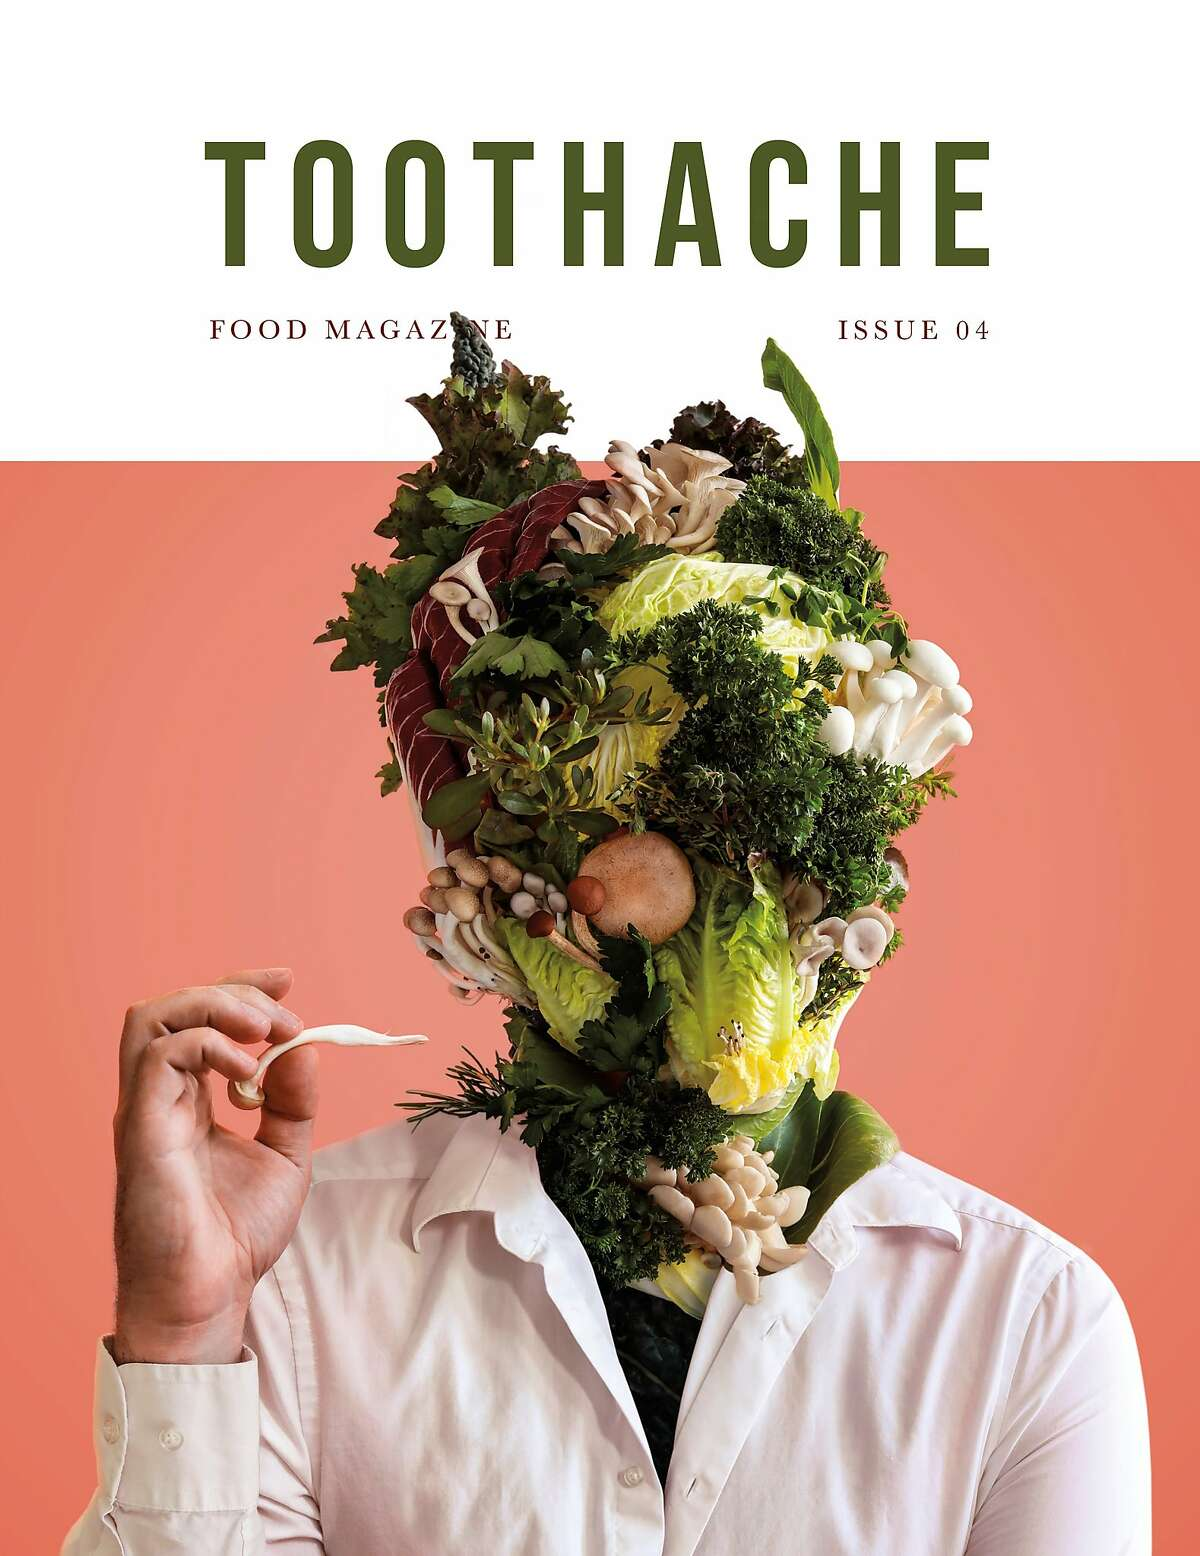 Toothache, produced by the San Francisco-based pastry chef Nick Muncy, is a food magazine made by and for chefs.